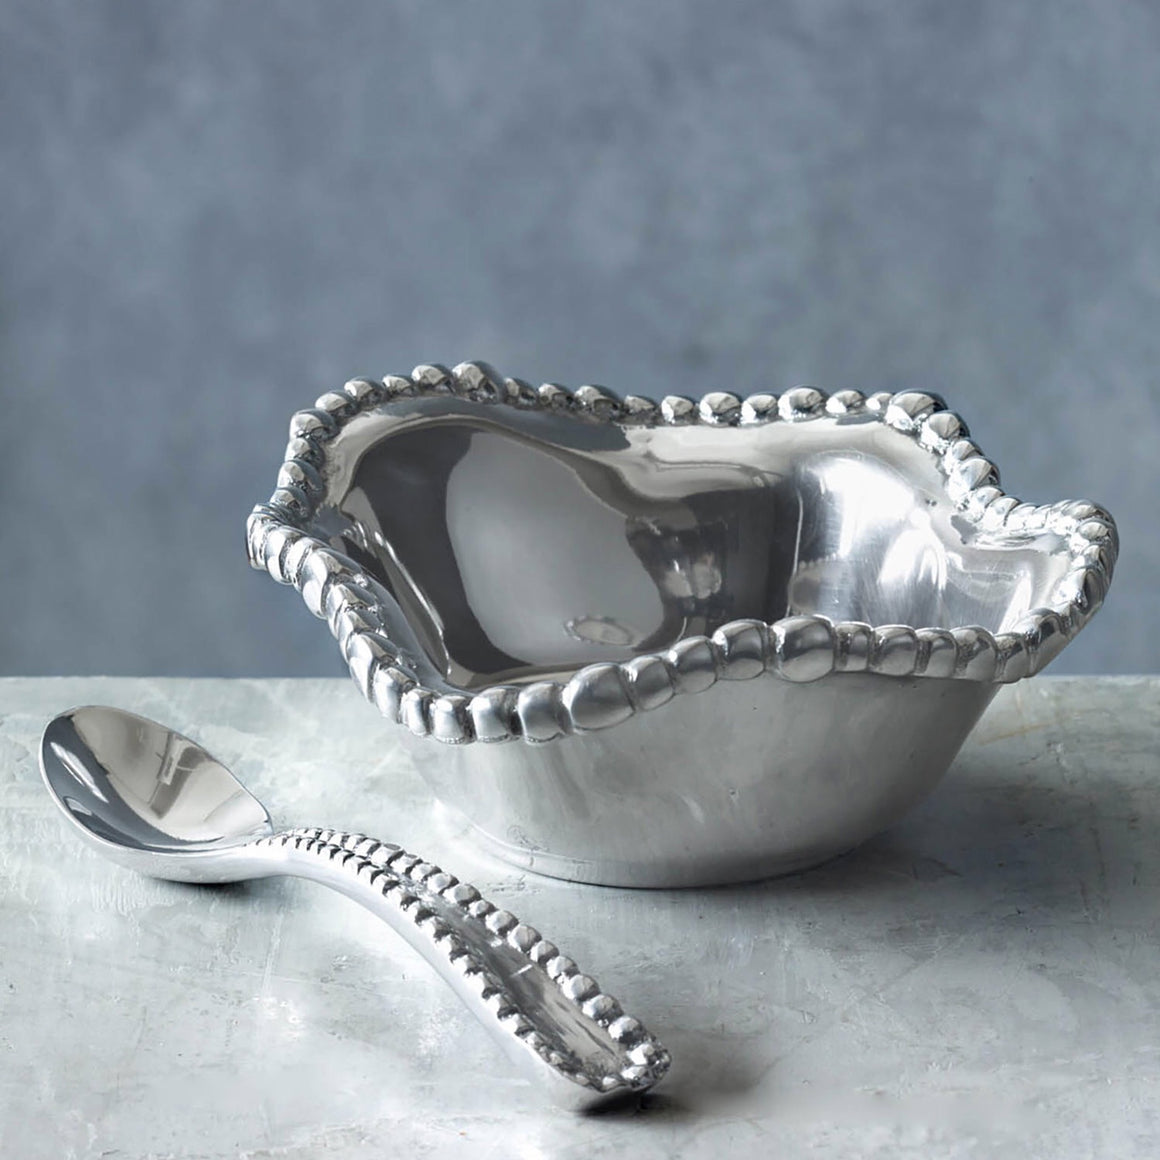 Organic Pearl Petite Bowl with Spoon